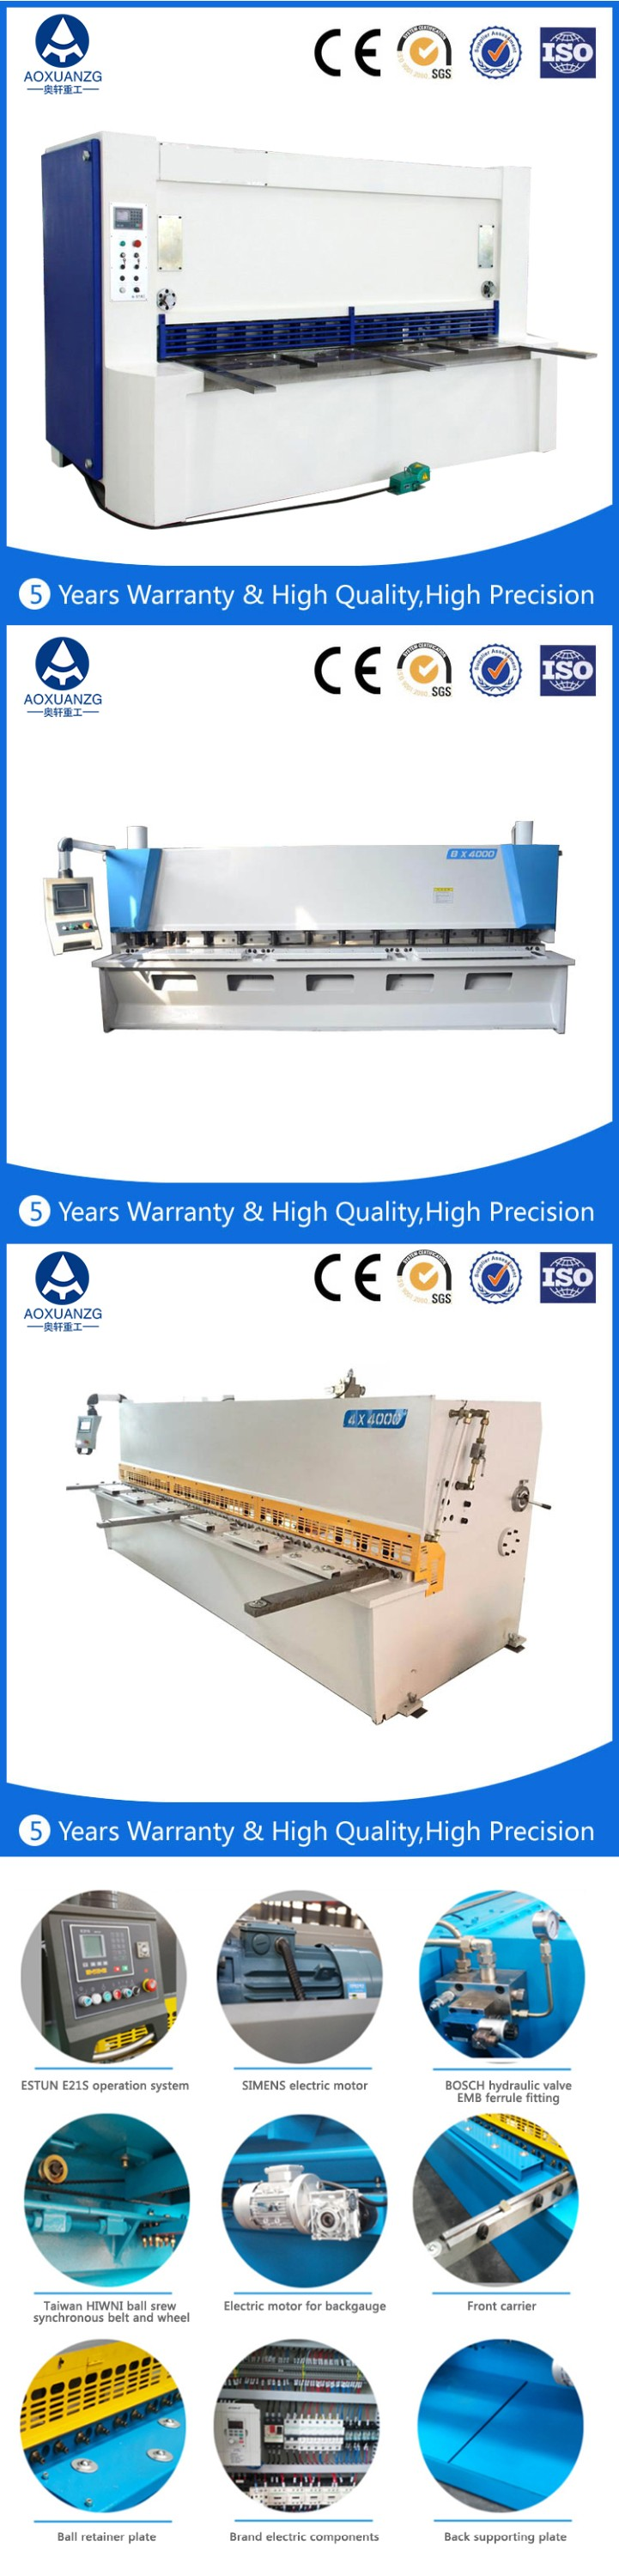 sheet cutting machine,Steel coil metal sheet cutting shearing machine ,hydraulic shear machine